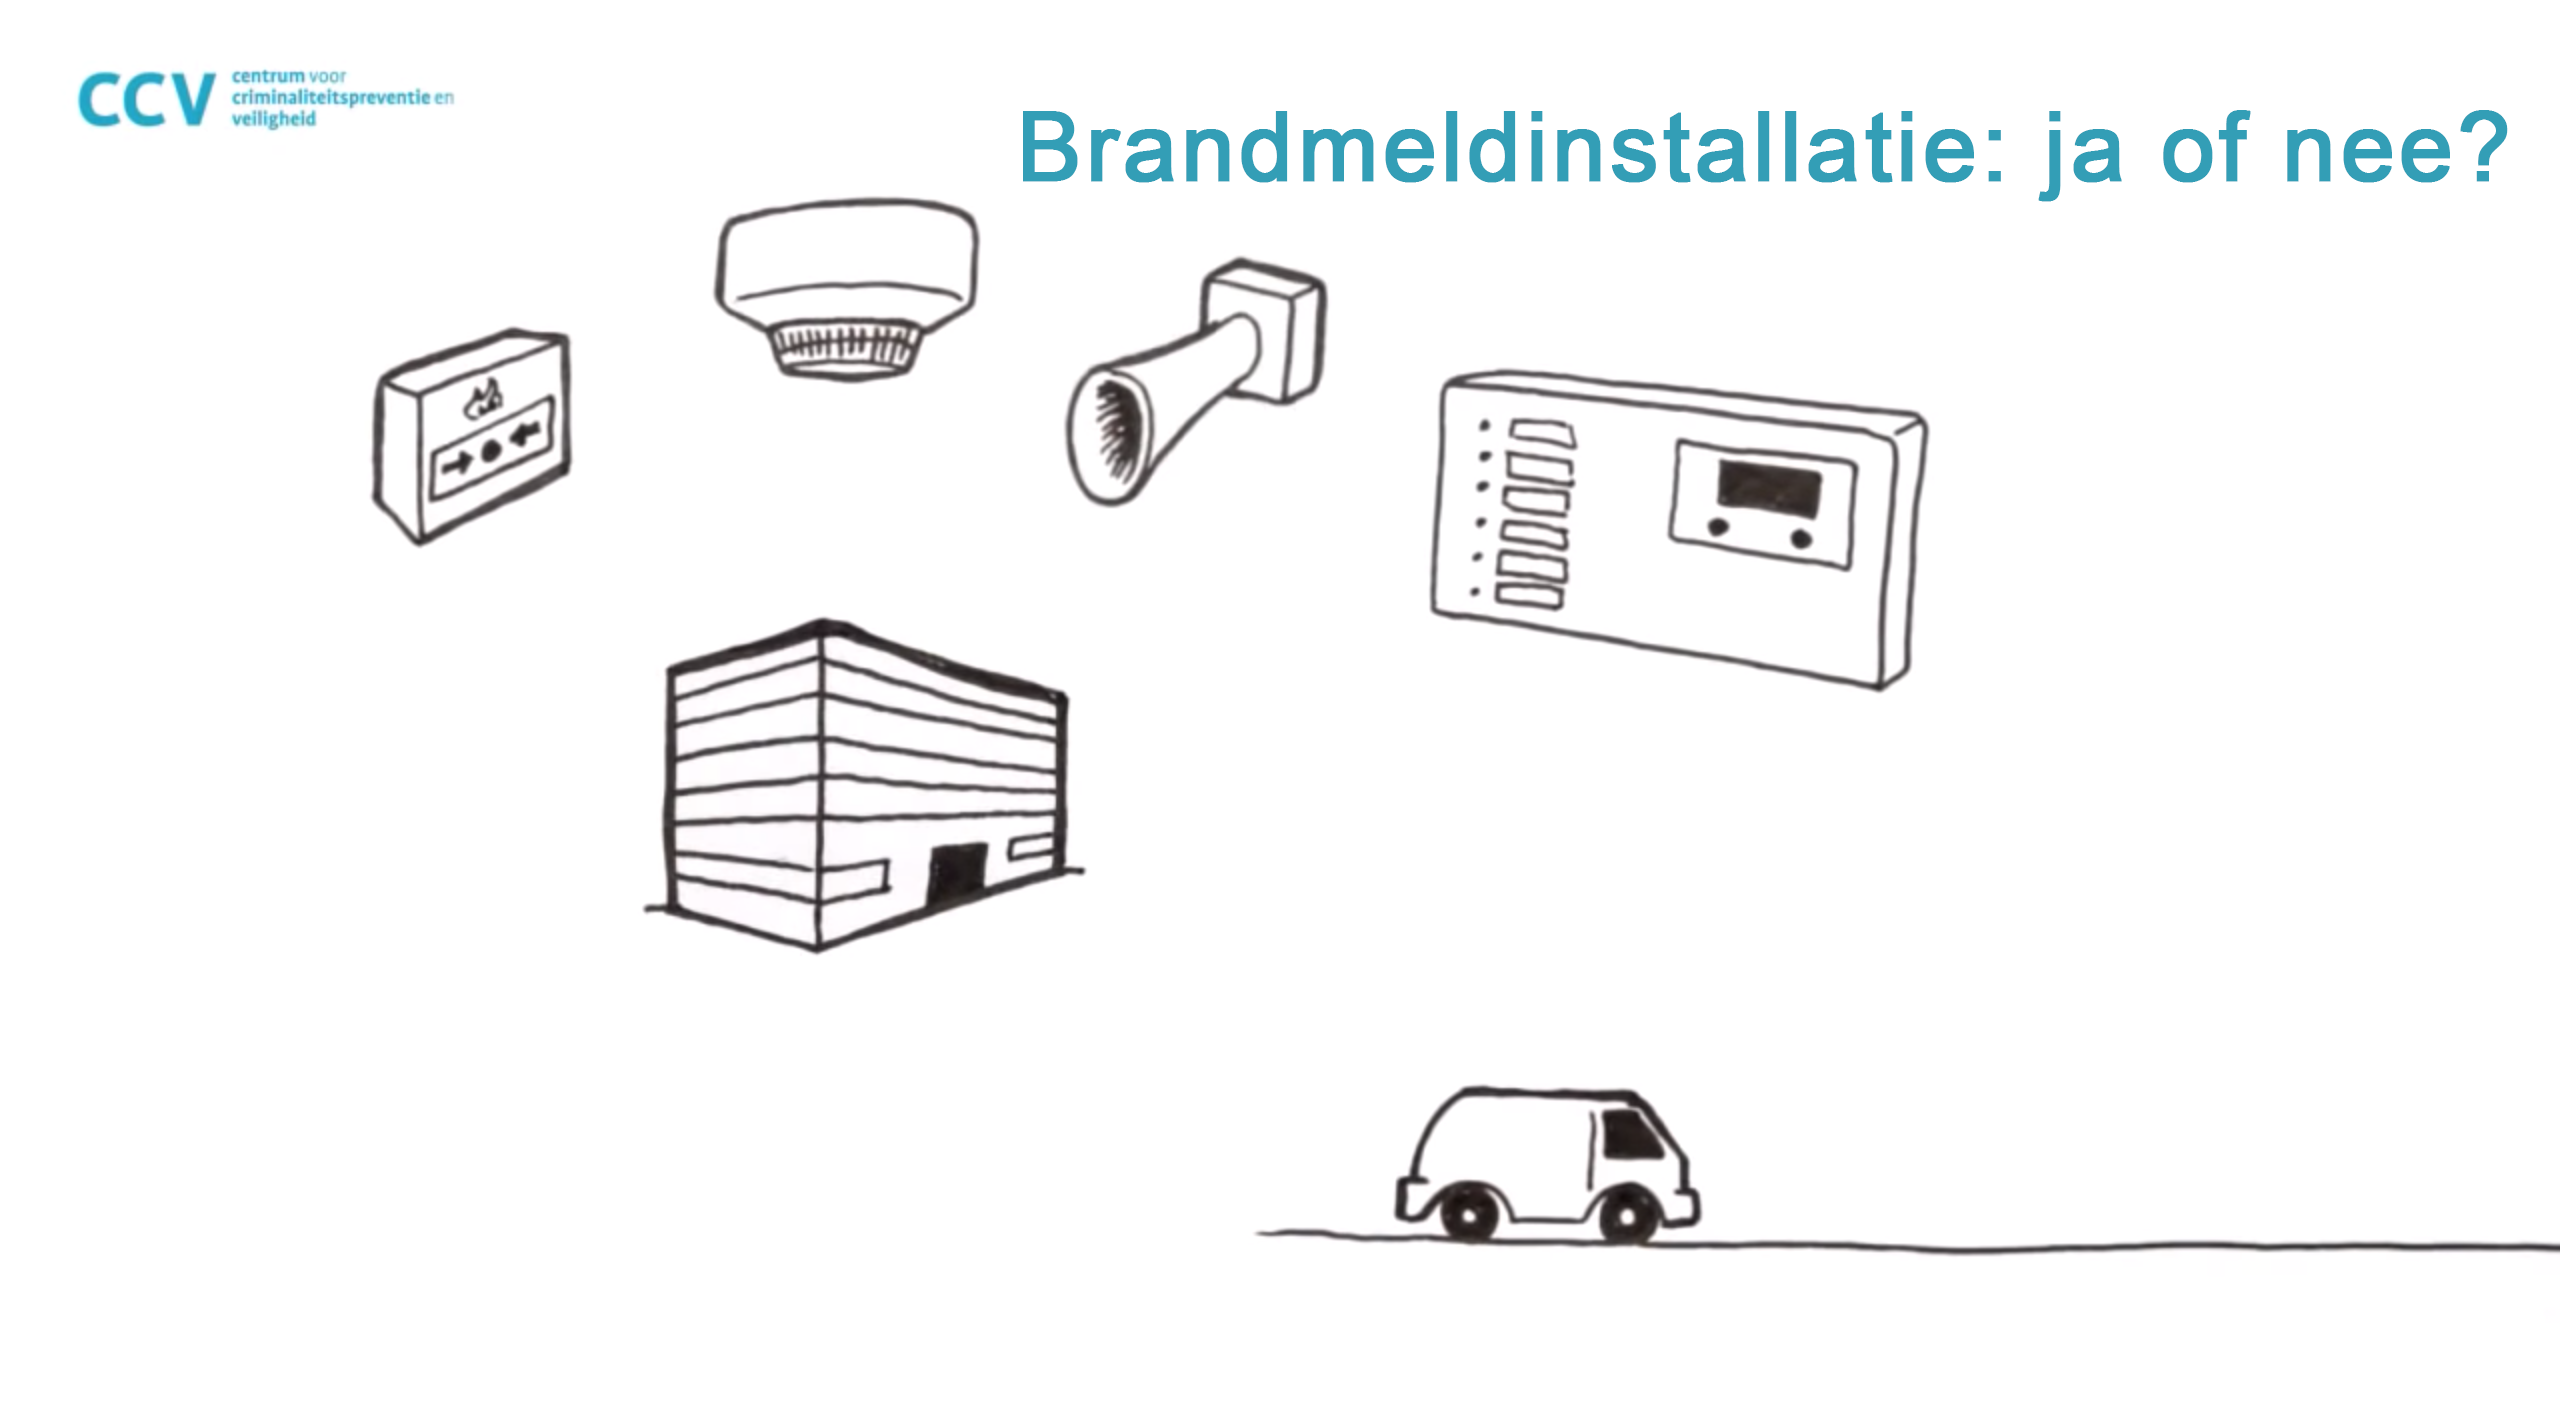 Brandmeldinstallatie: ja of nee?